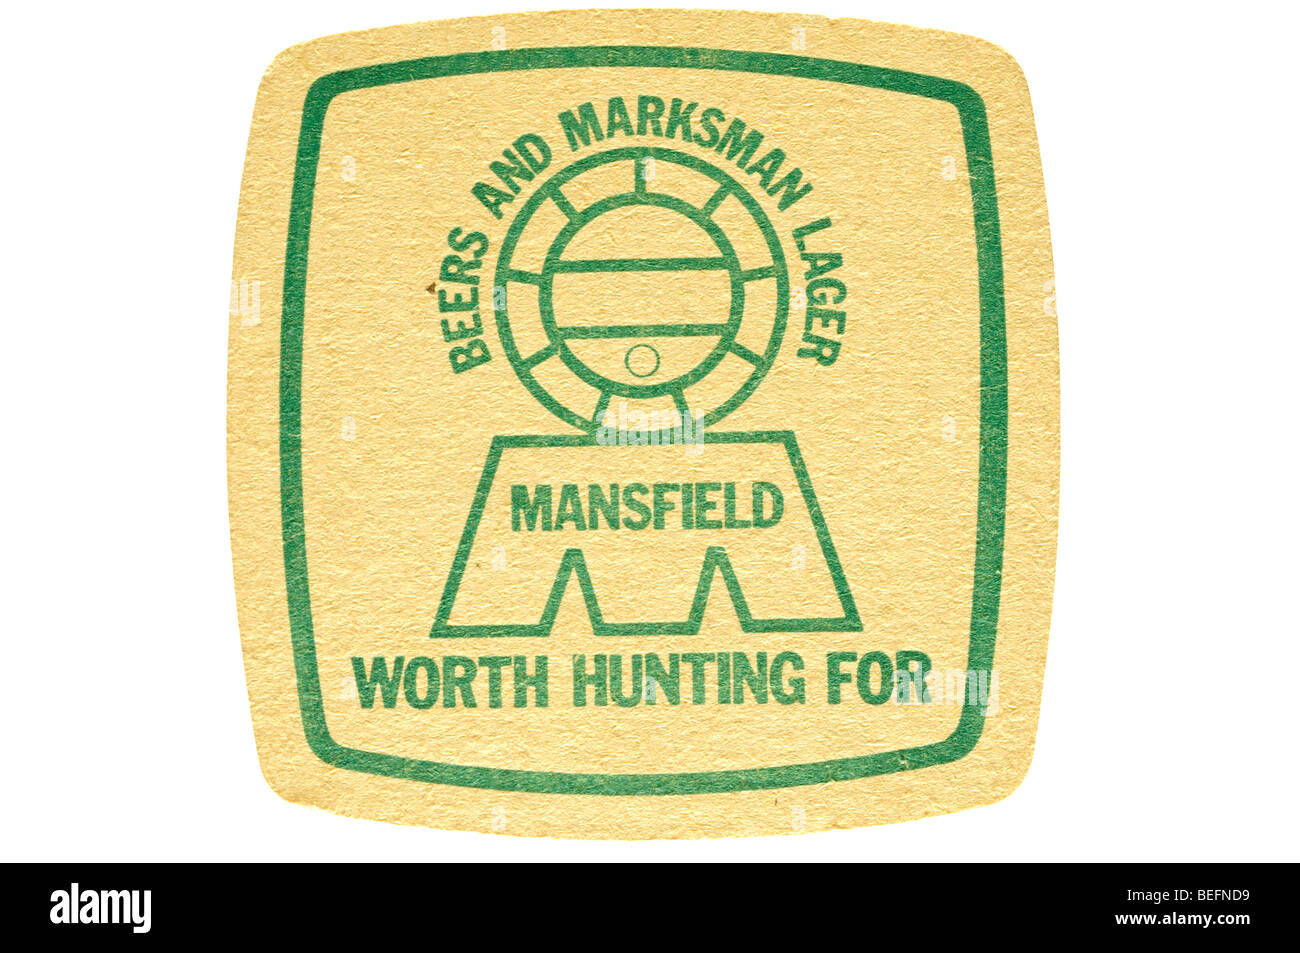 beers and marksman lager mansfield worth hunting for - Stock Image